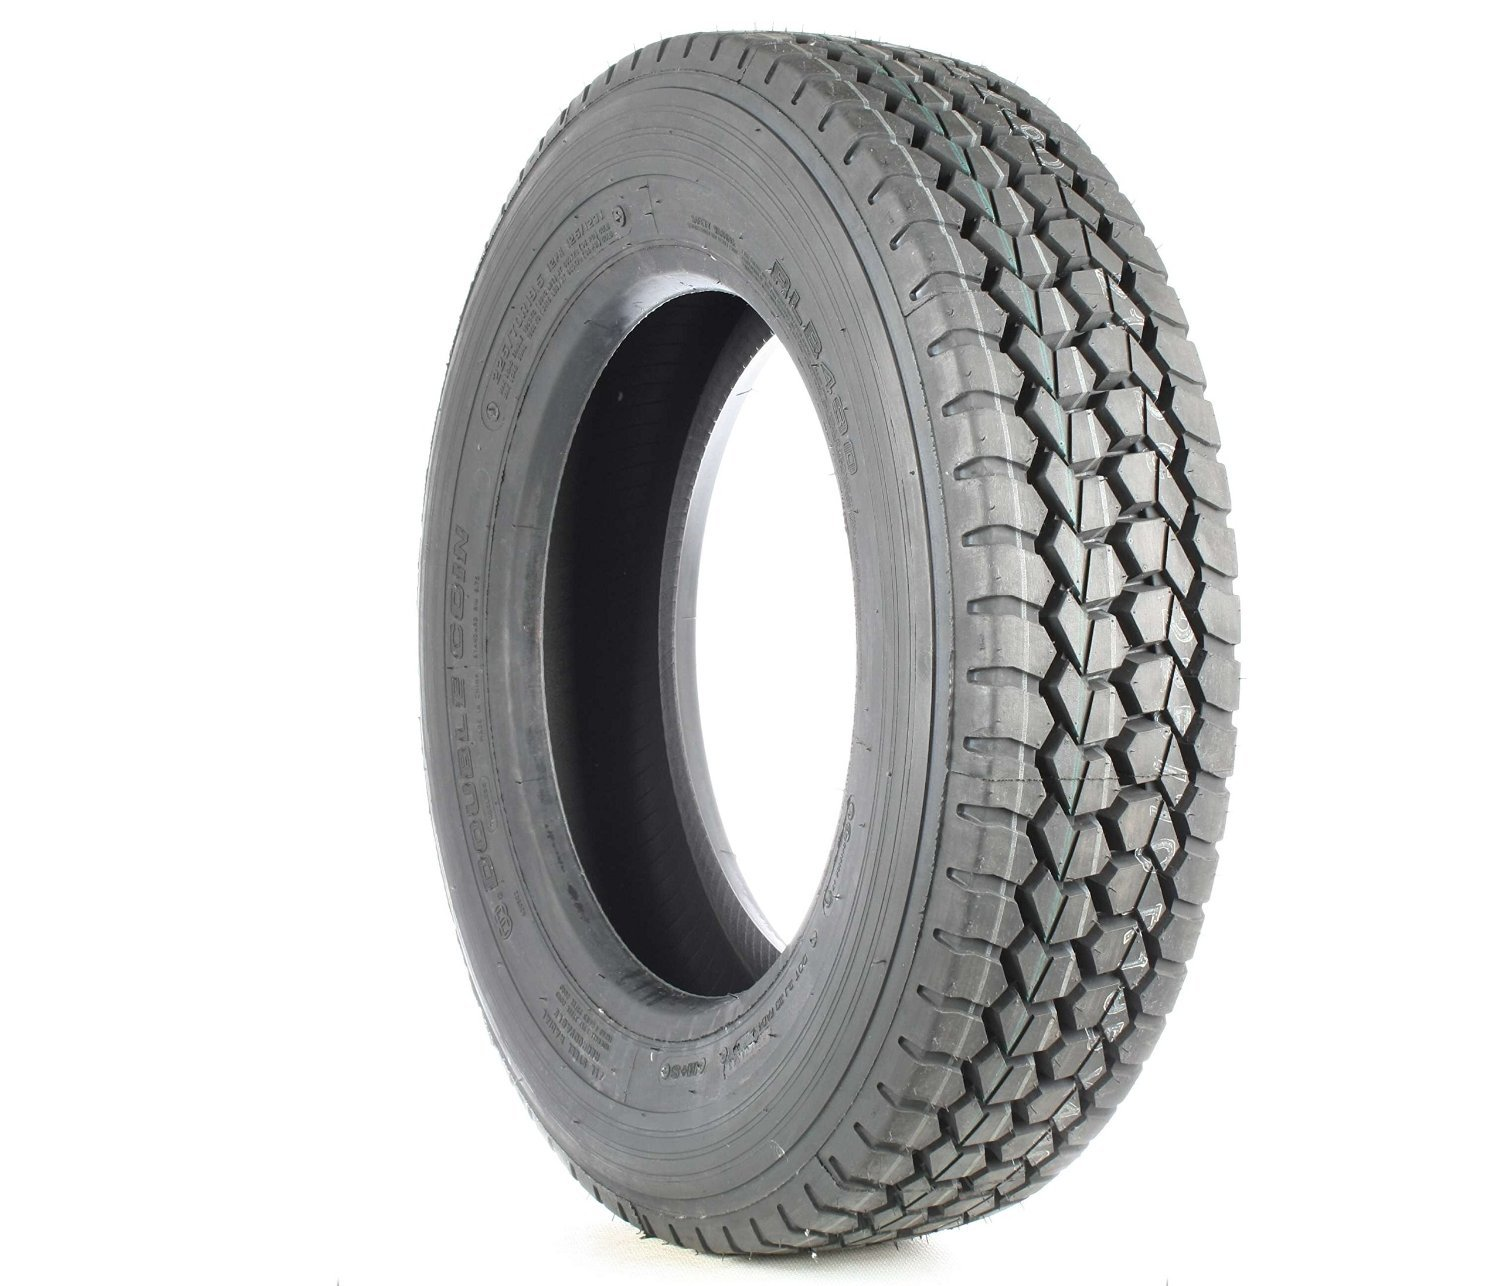 Double Coin RLB490 Low Profile Drive-Position Multi-Use Commercial Radial Truck Tire - 265/70R19.5 16 ply